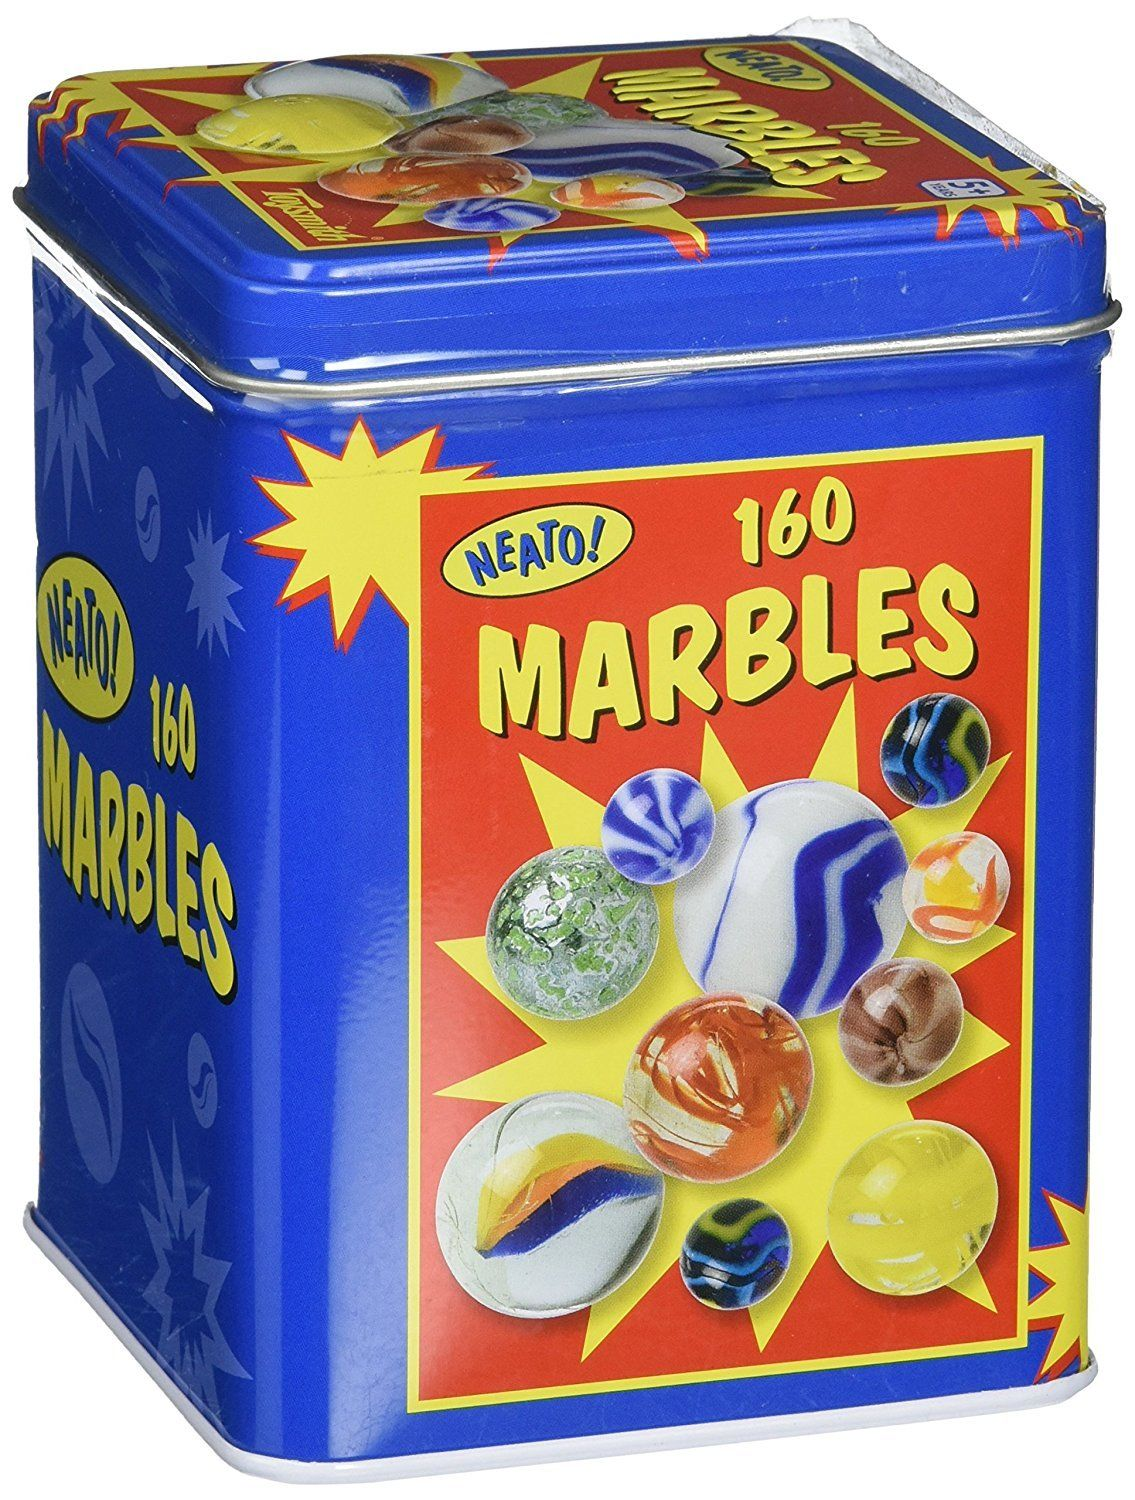 Toysmith – Marbles in a TinThe Toysmith Marbles in a Tin Box is a timeless classic that will providehours of fun for young children. The marbles in this set can be used in games ofskill, traded with friends or for the simple pleasure of studying their uniquepatterns. This set includes 160 glass marbles in a variety of colors andpatterns. Marbles are kept in a colorful tin storage box when not in use,reducing clutter. Suitable for indoor or outdoor play.Features:A collection of 160 classic, glass